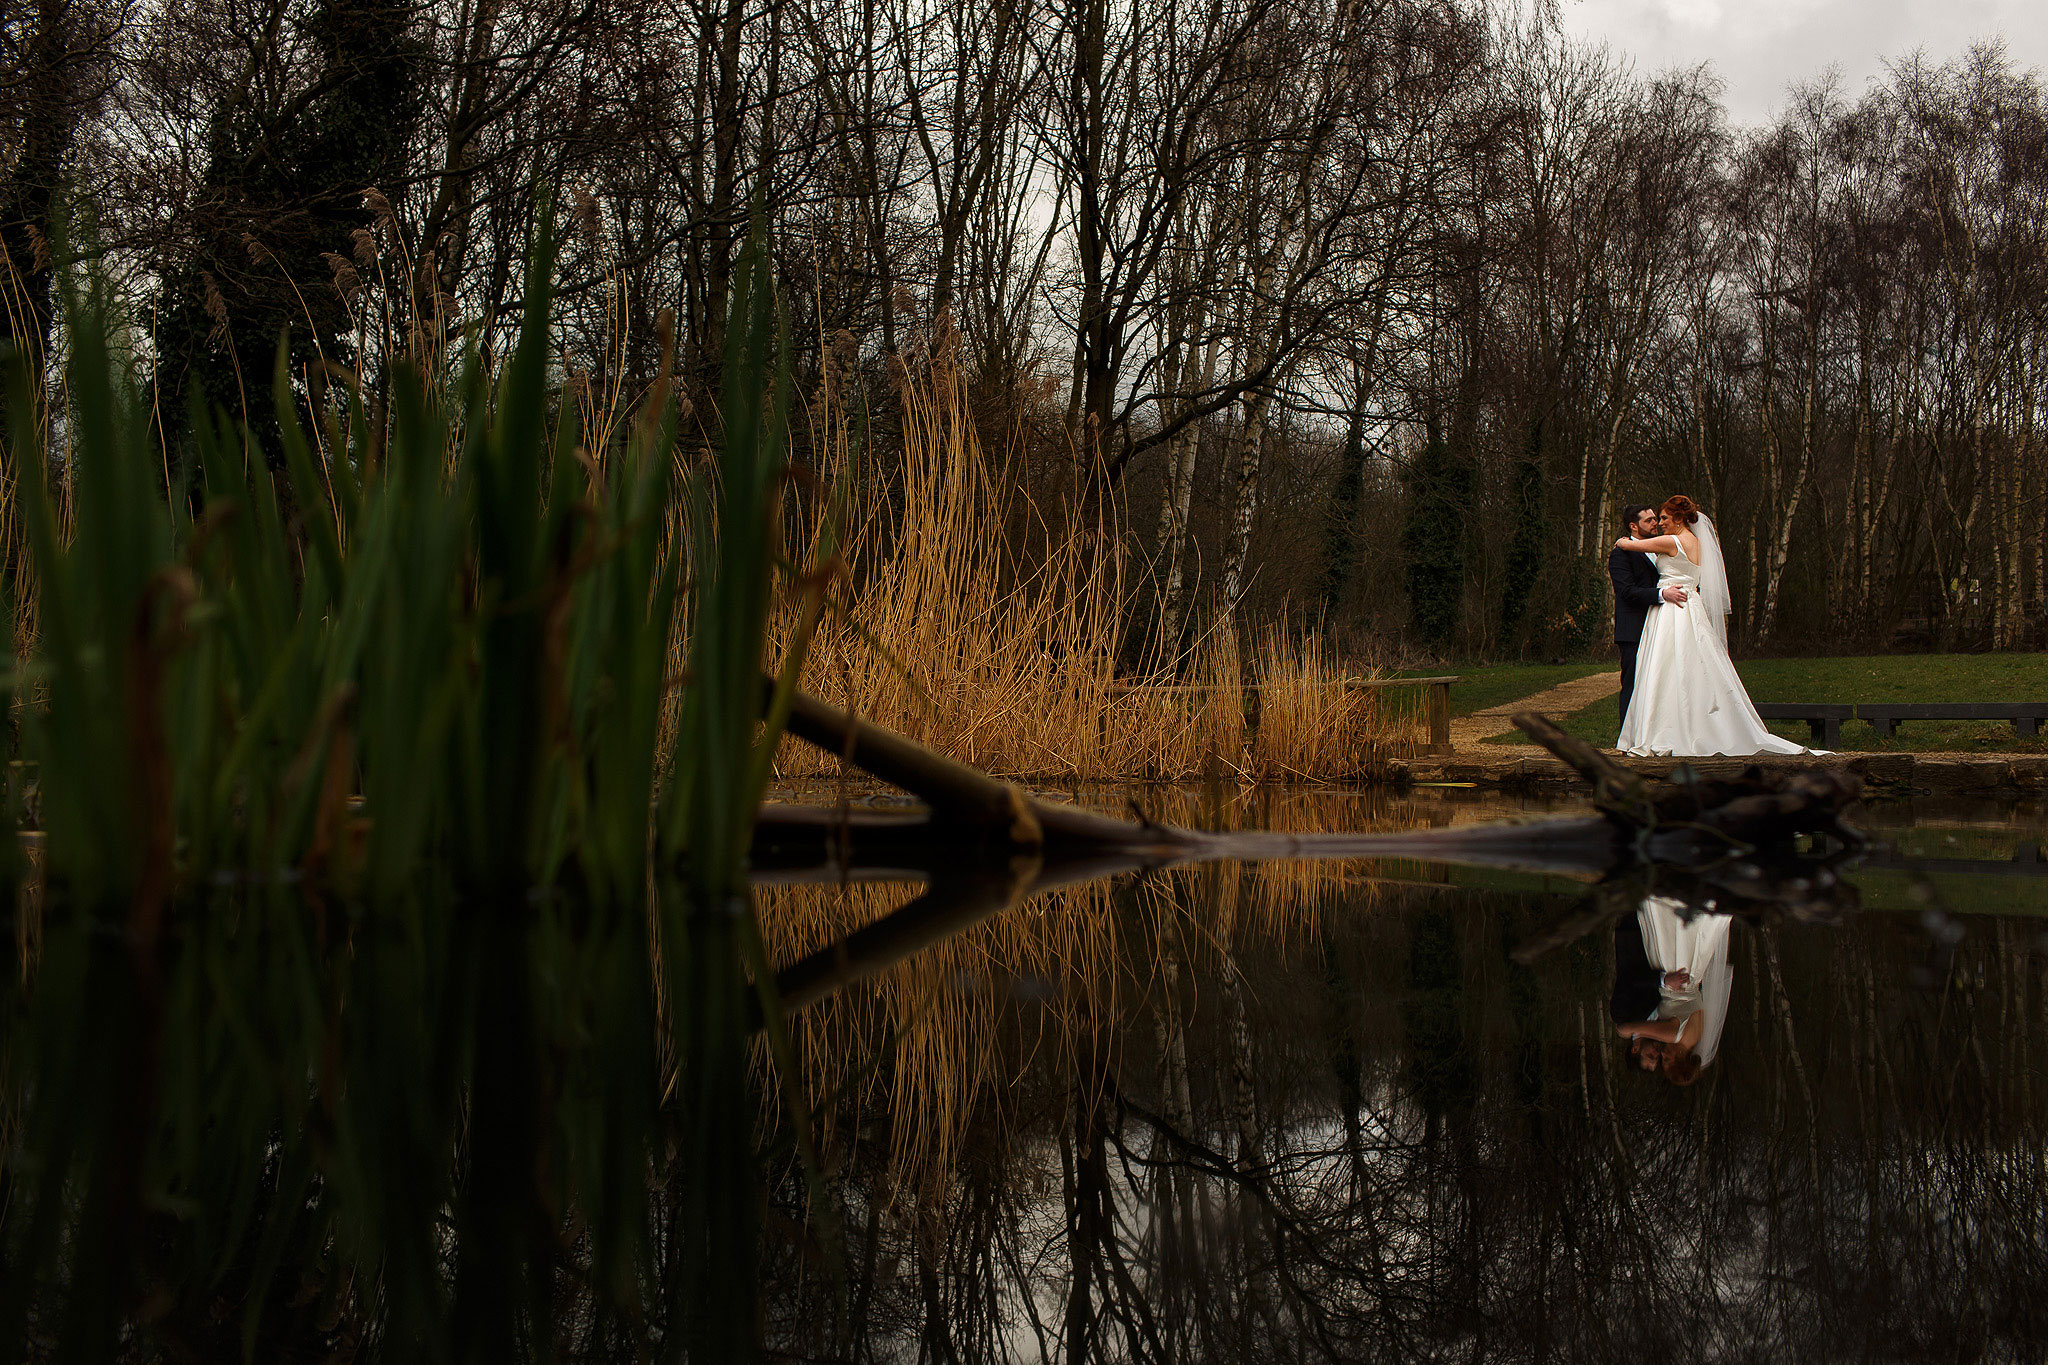 Bride and groom wedding portrait taken from across the lake in the countryside at Oakwell Hall Country Park wedding